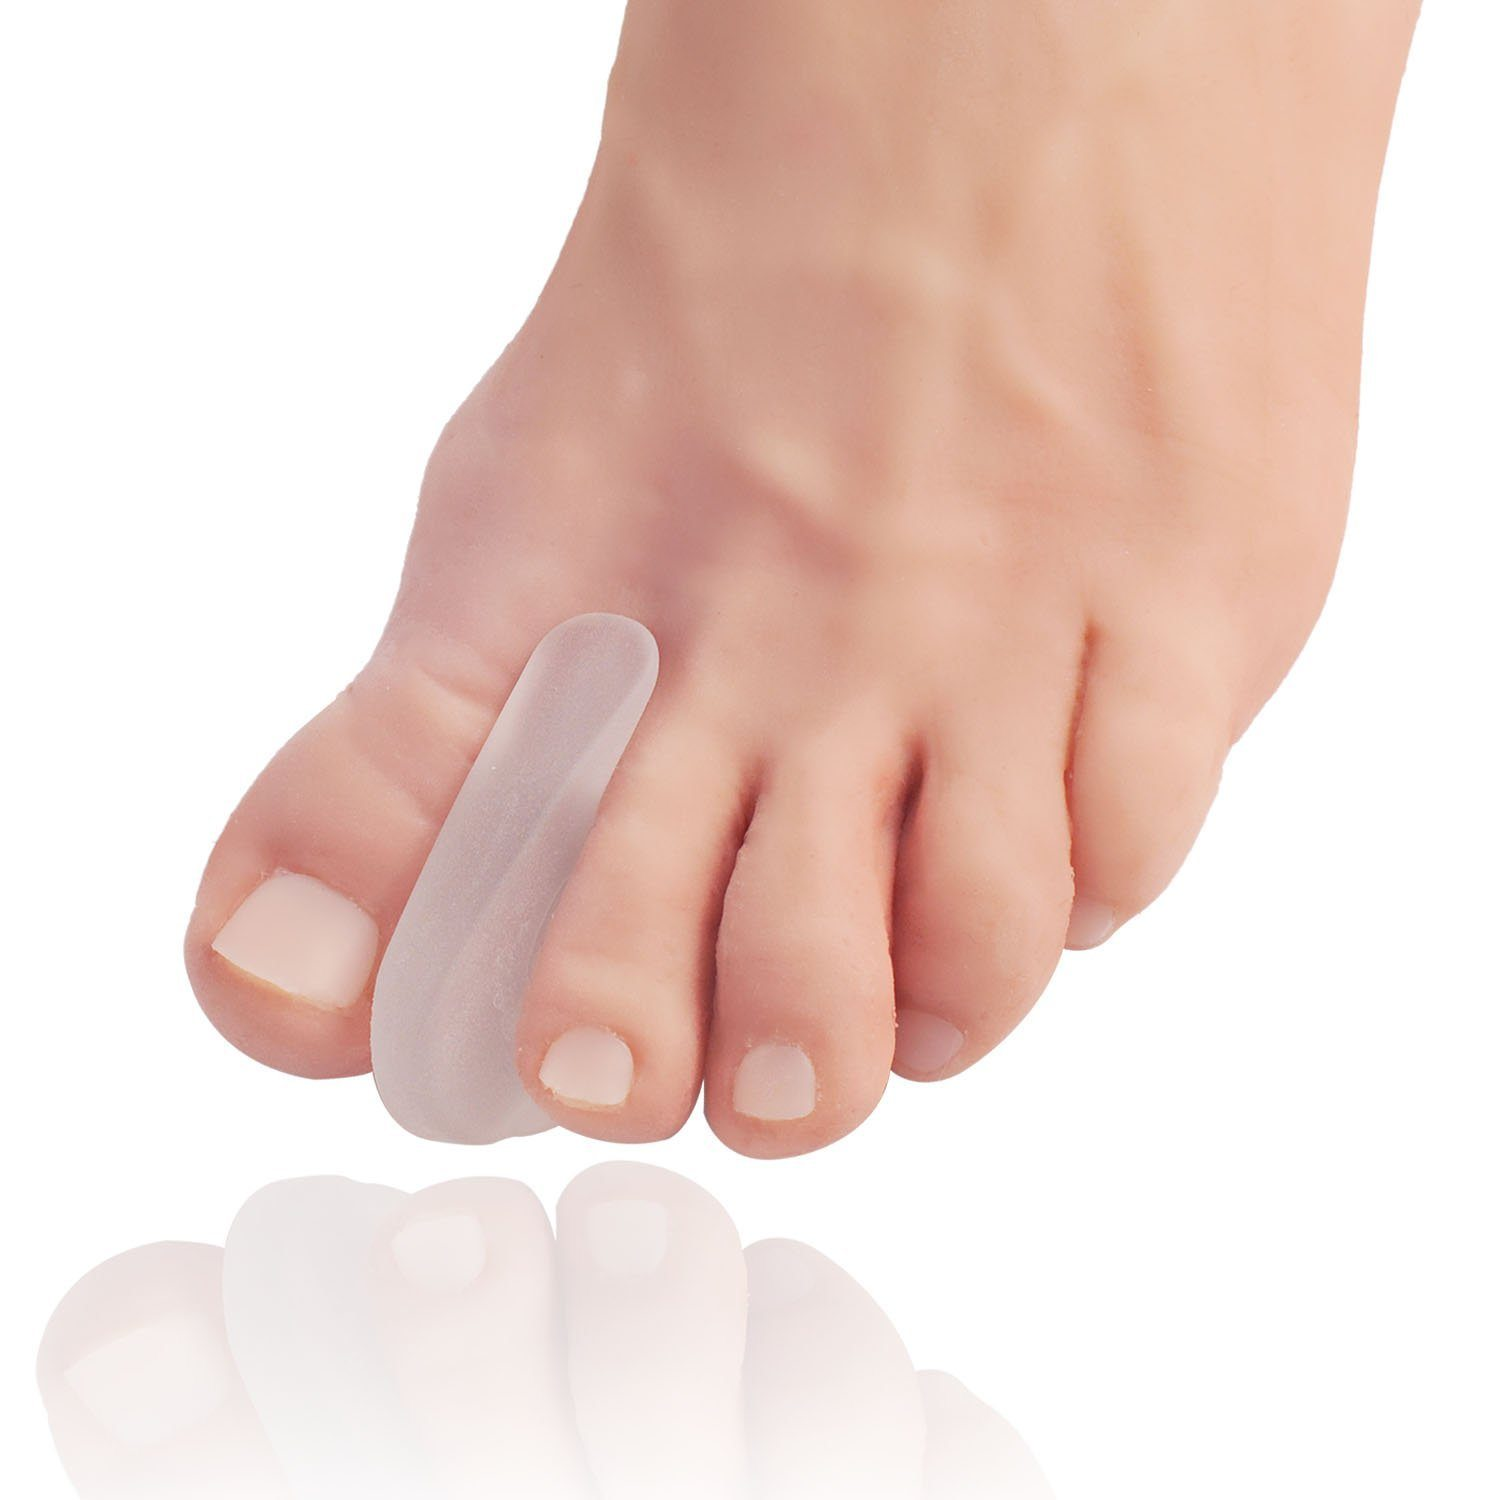 Dr. Frederick's Original Flared Gel Toe Separators -- 6 Pieces - for Bunions and Overlapping Toes Foot Pain Dr. Frederick's Original